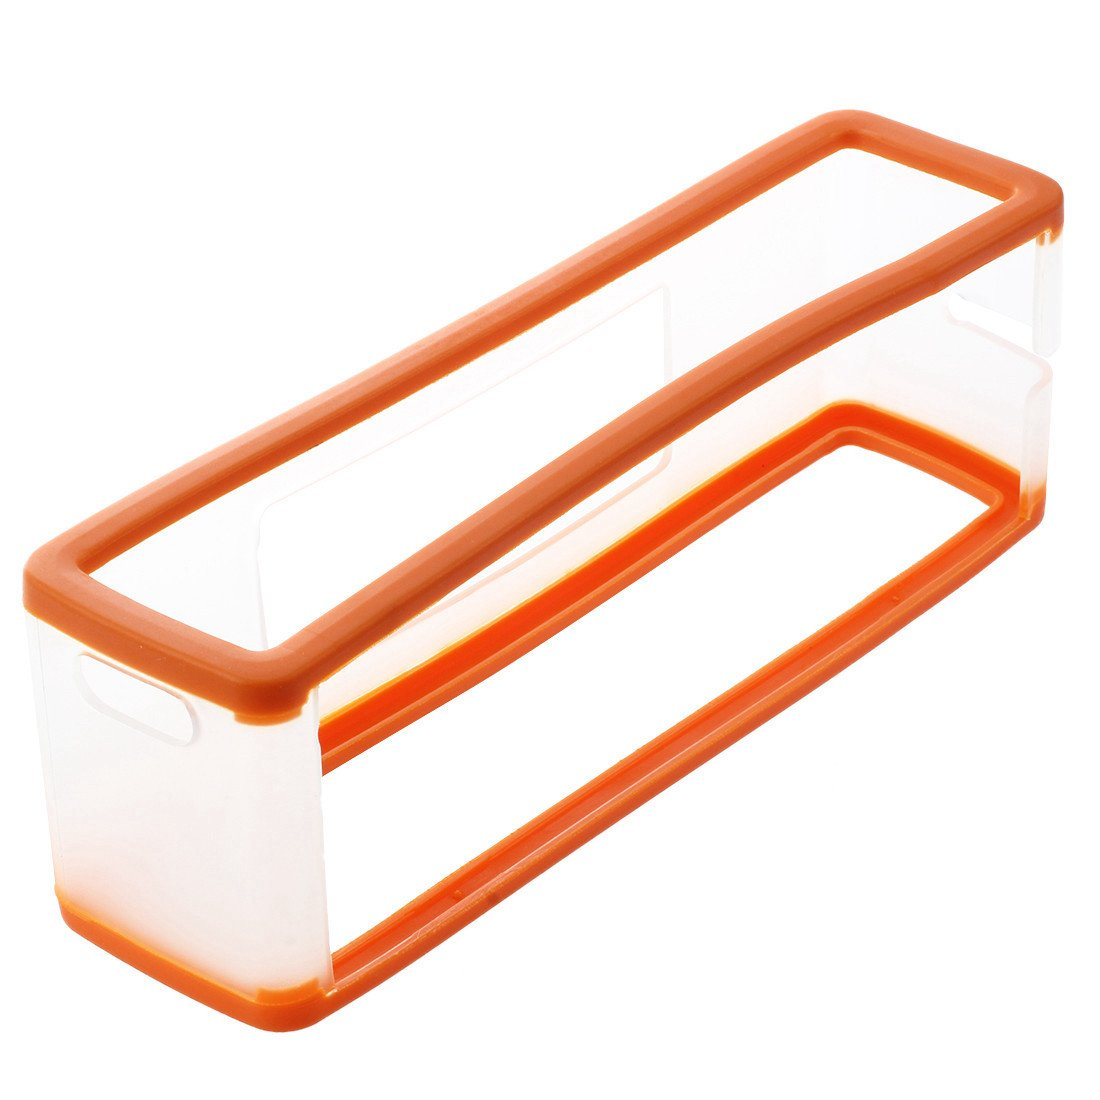 Soft Cover Case - SODIAL(R) Soft Cover Case Protector for BOSE SoundLink Mini Bluetooth Speaker Orange+Clear 059205A3